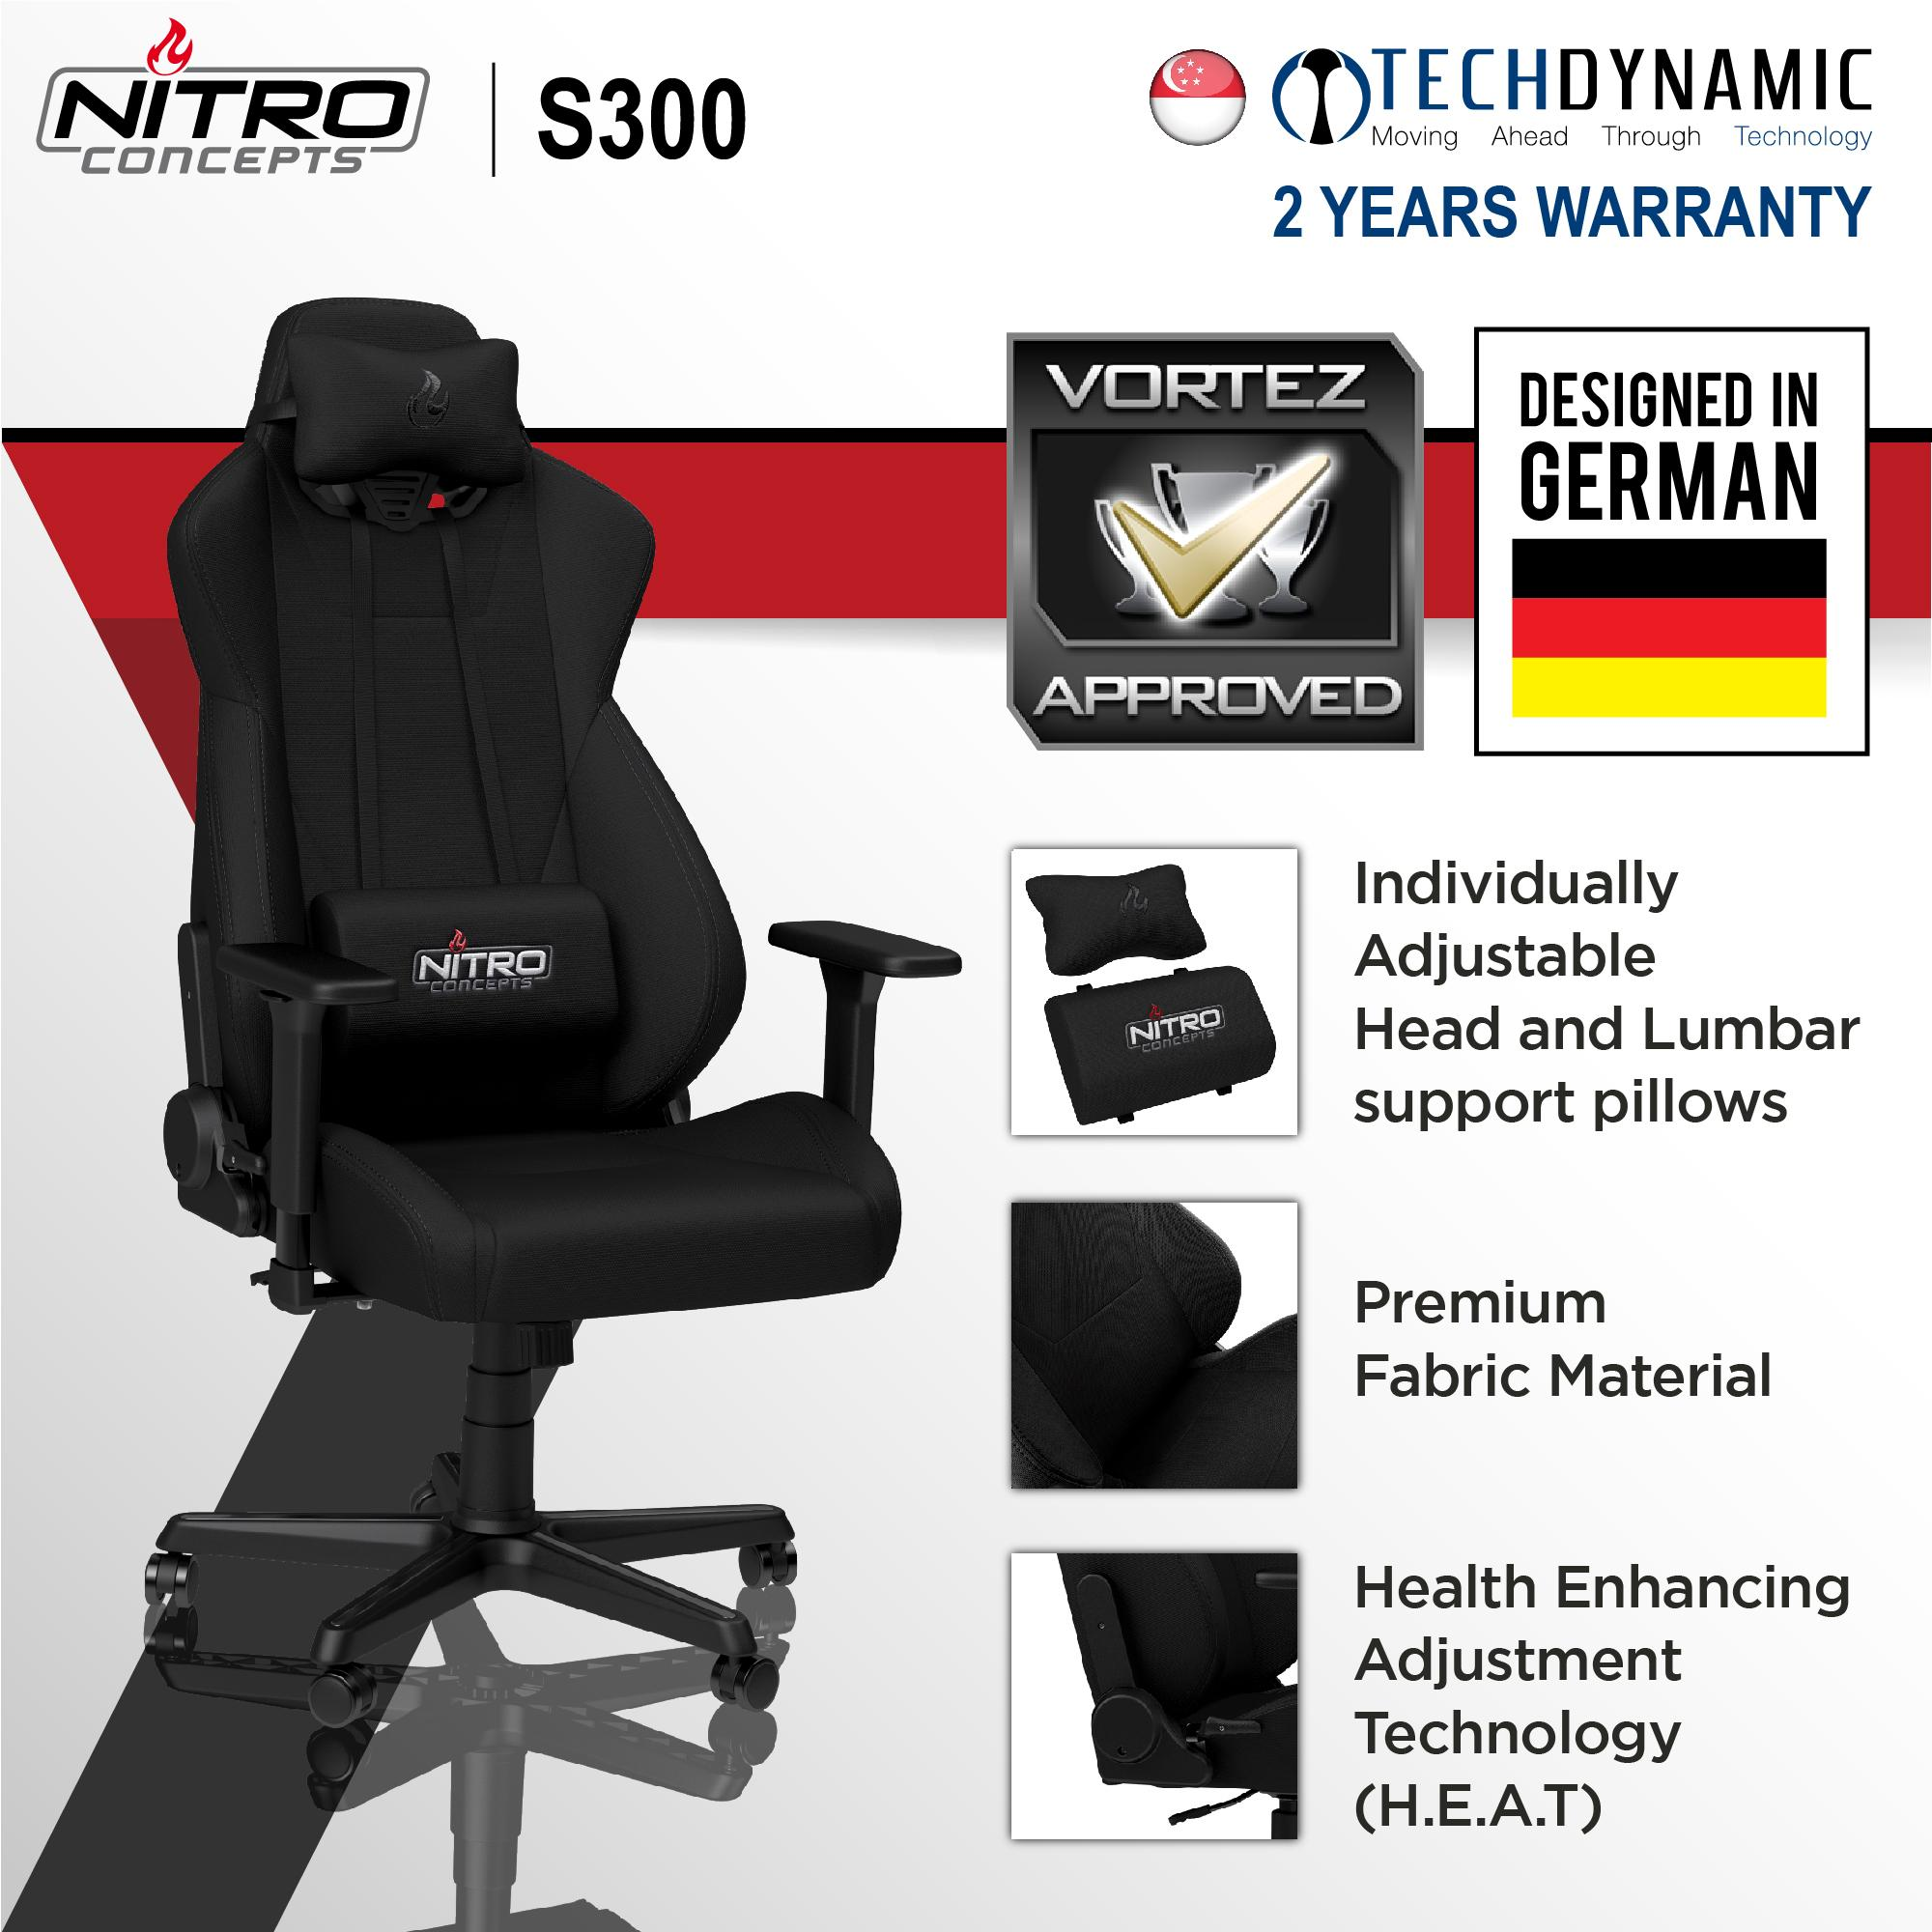 Nitro S300 FABRIC GAMING CHAIR Black/Black-Red/Black-White  [Available in 3 colors]